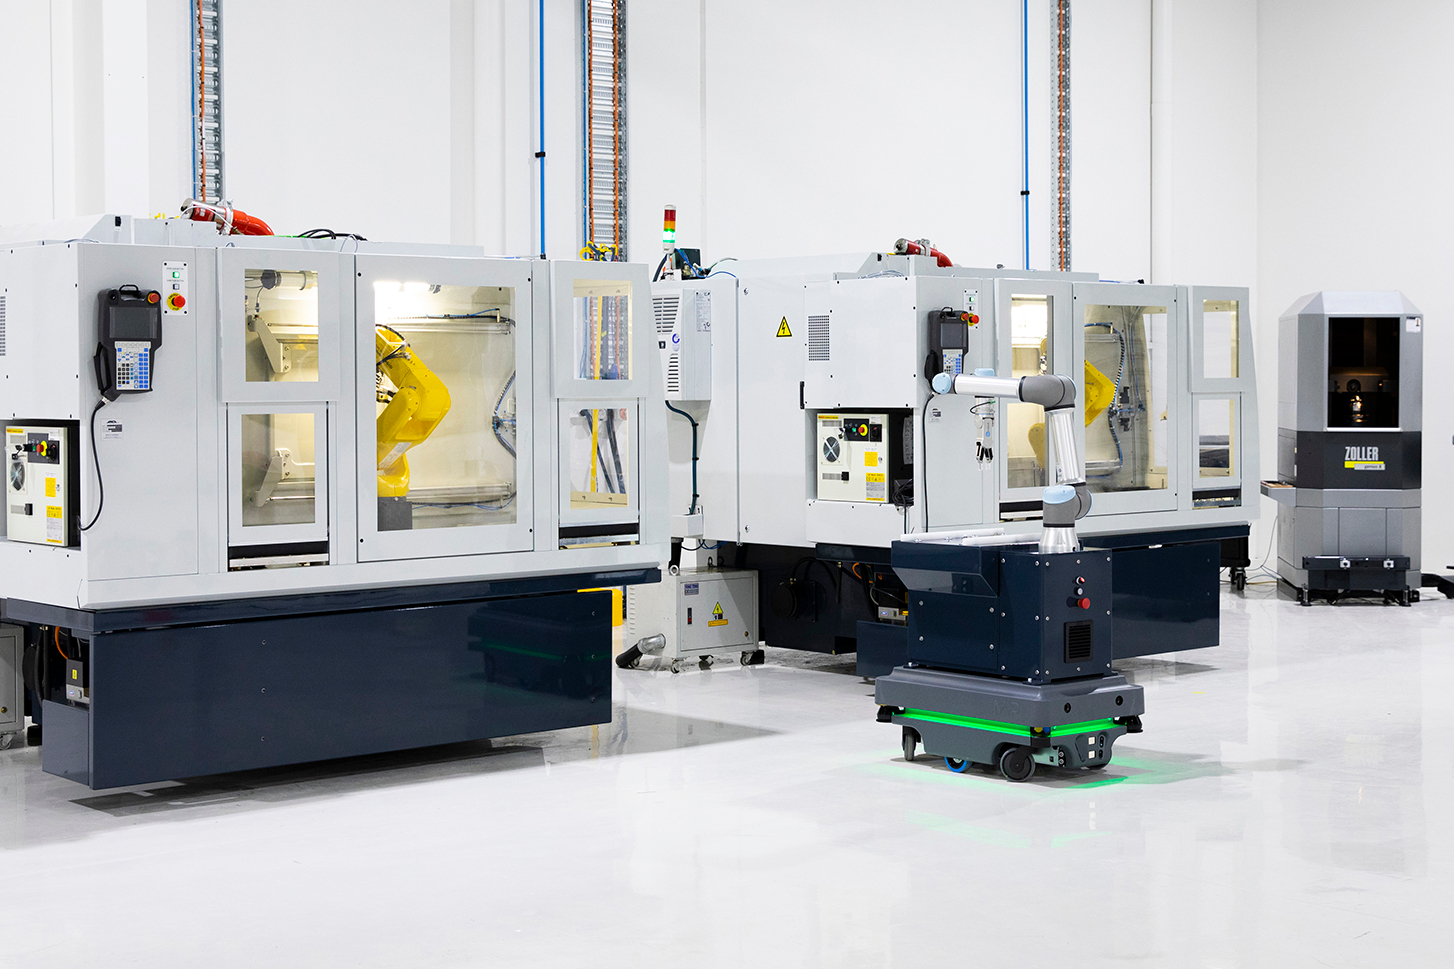 Integrated Manufacturing System Connects Process Platforms, Streamlines Cutting Tool Production